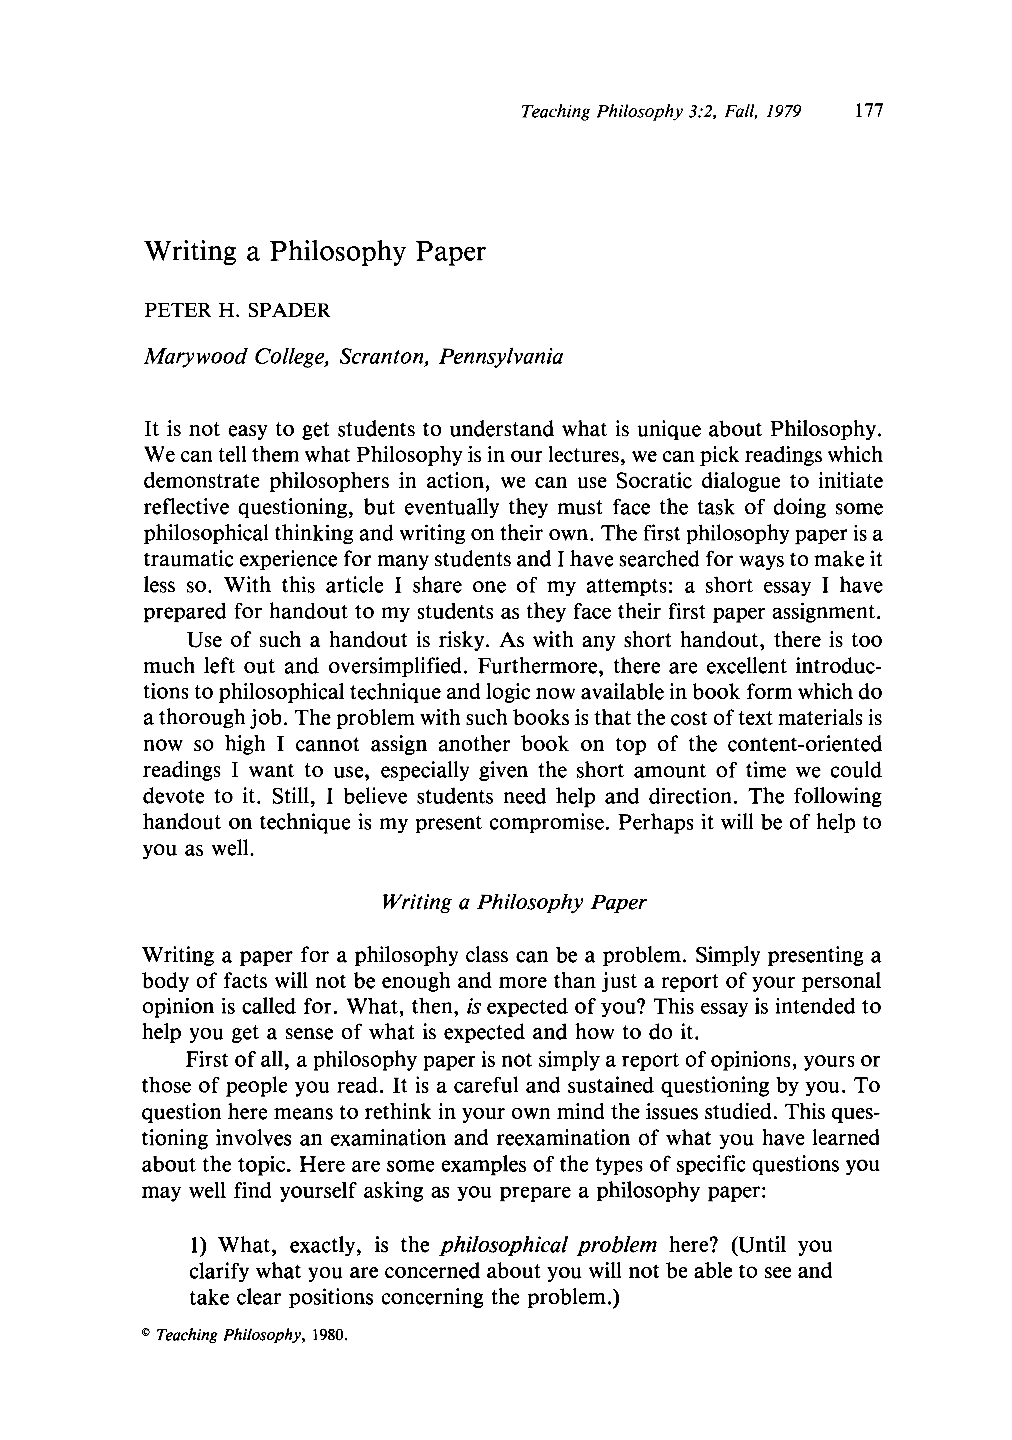 essay philosophy of education Philosophy of education essays - high-quality paper writing and editing website - we help students to get high-quality writing assignments from scratch secure paper writing company - get top-quality paper assignments with benefits reliable essay and research paper writing website - we can write you reliable essays, research papers.